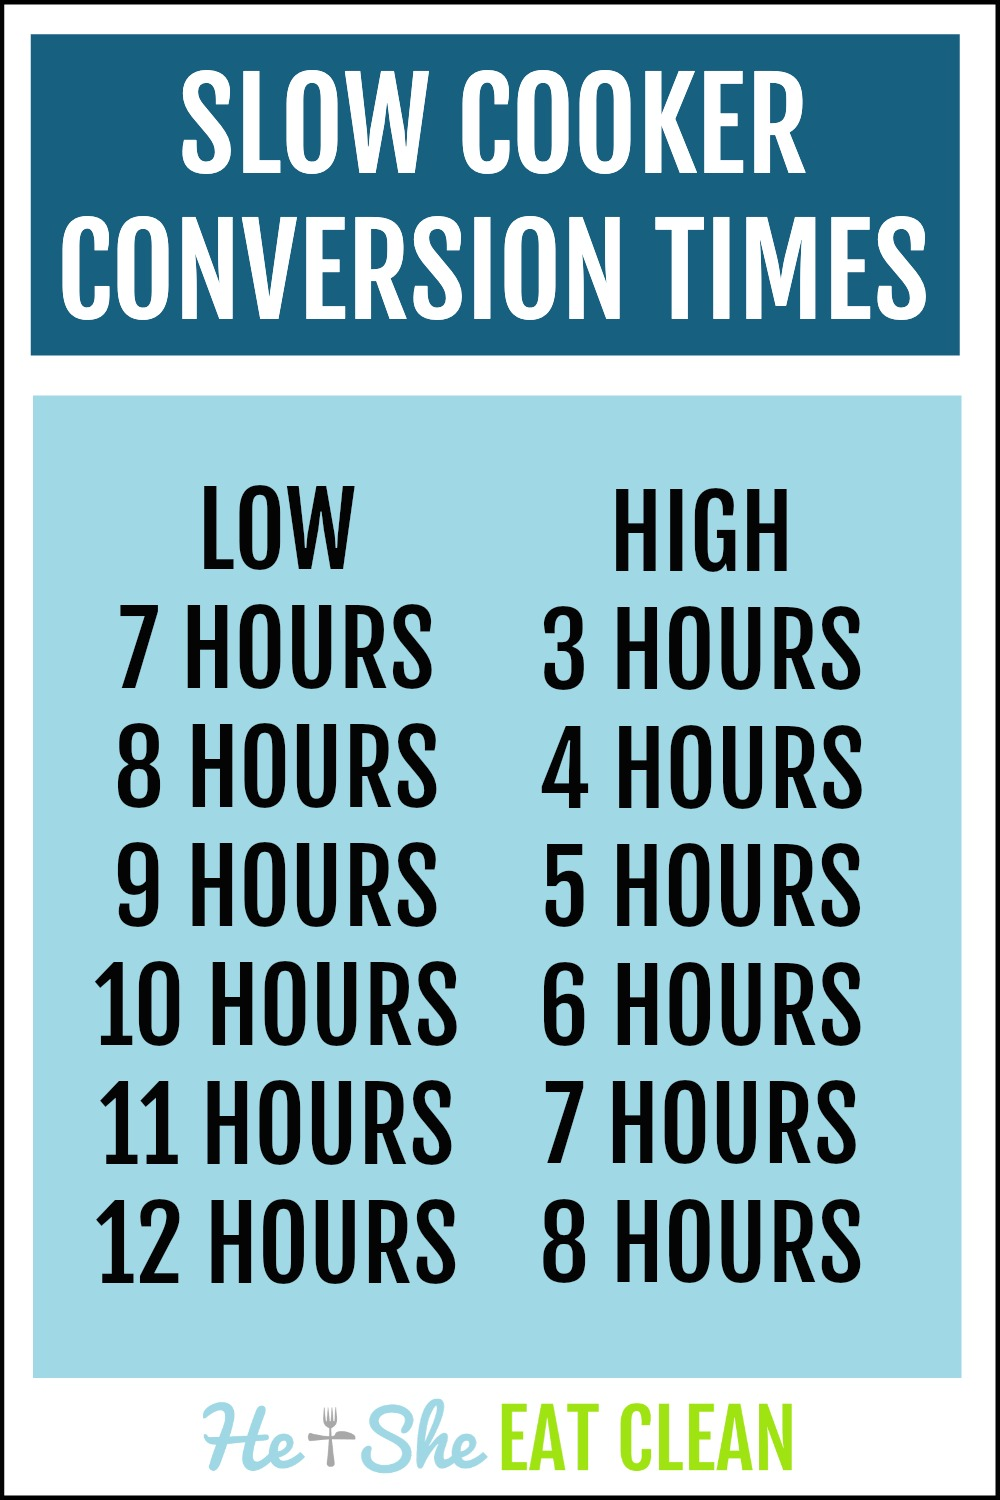 slow cooker time conversion chart in blue and white